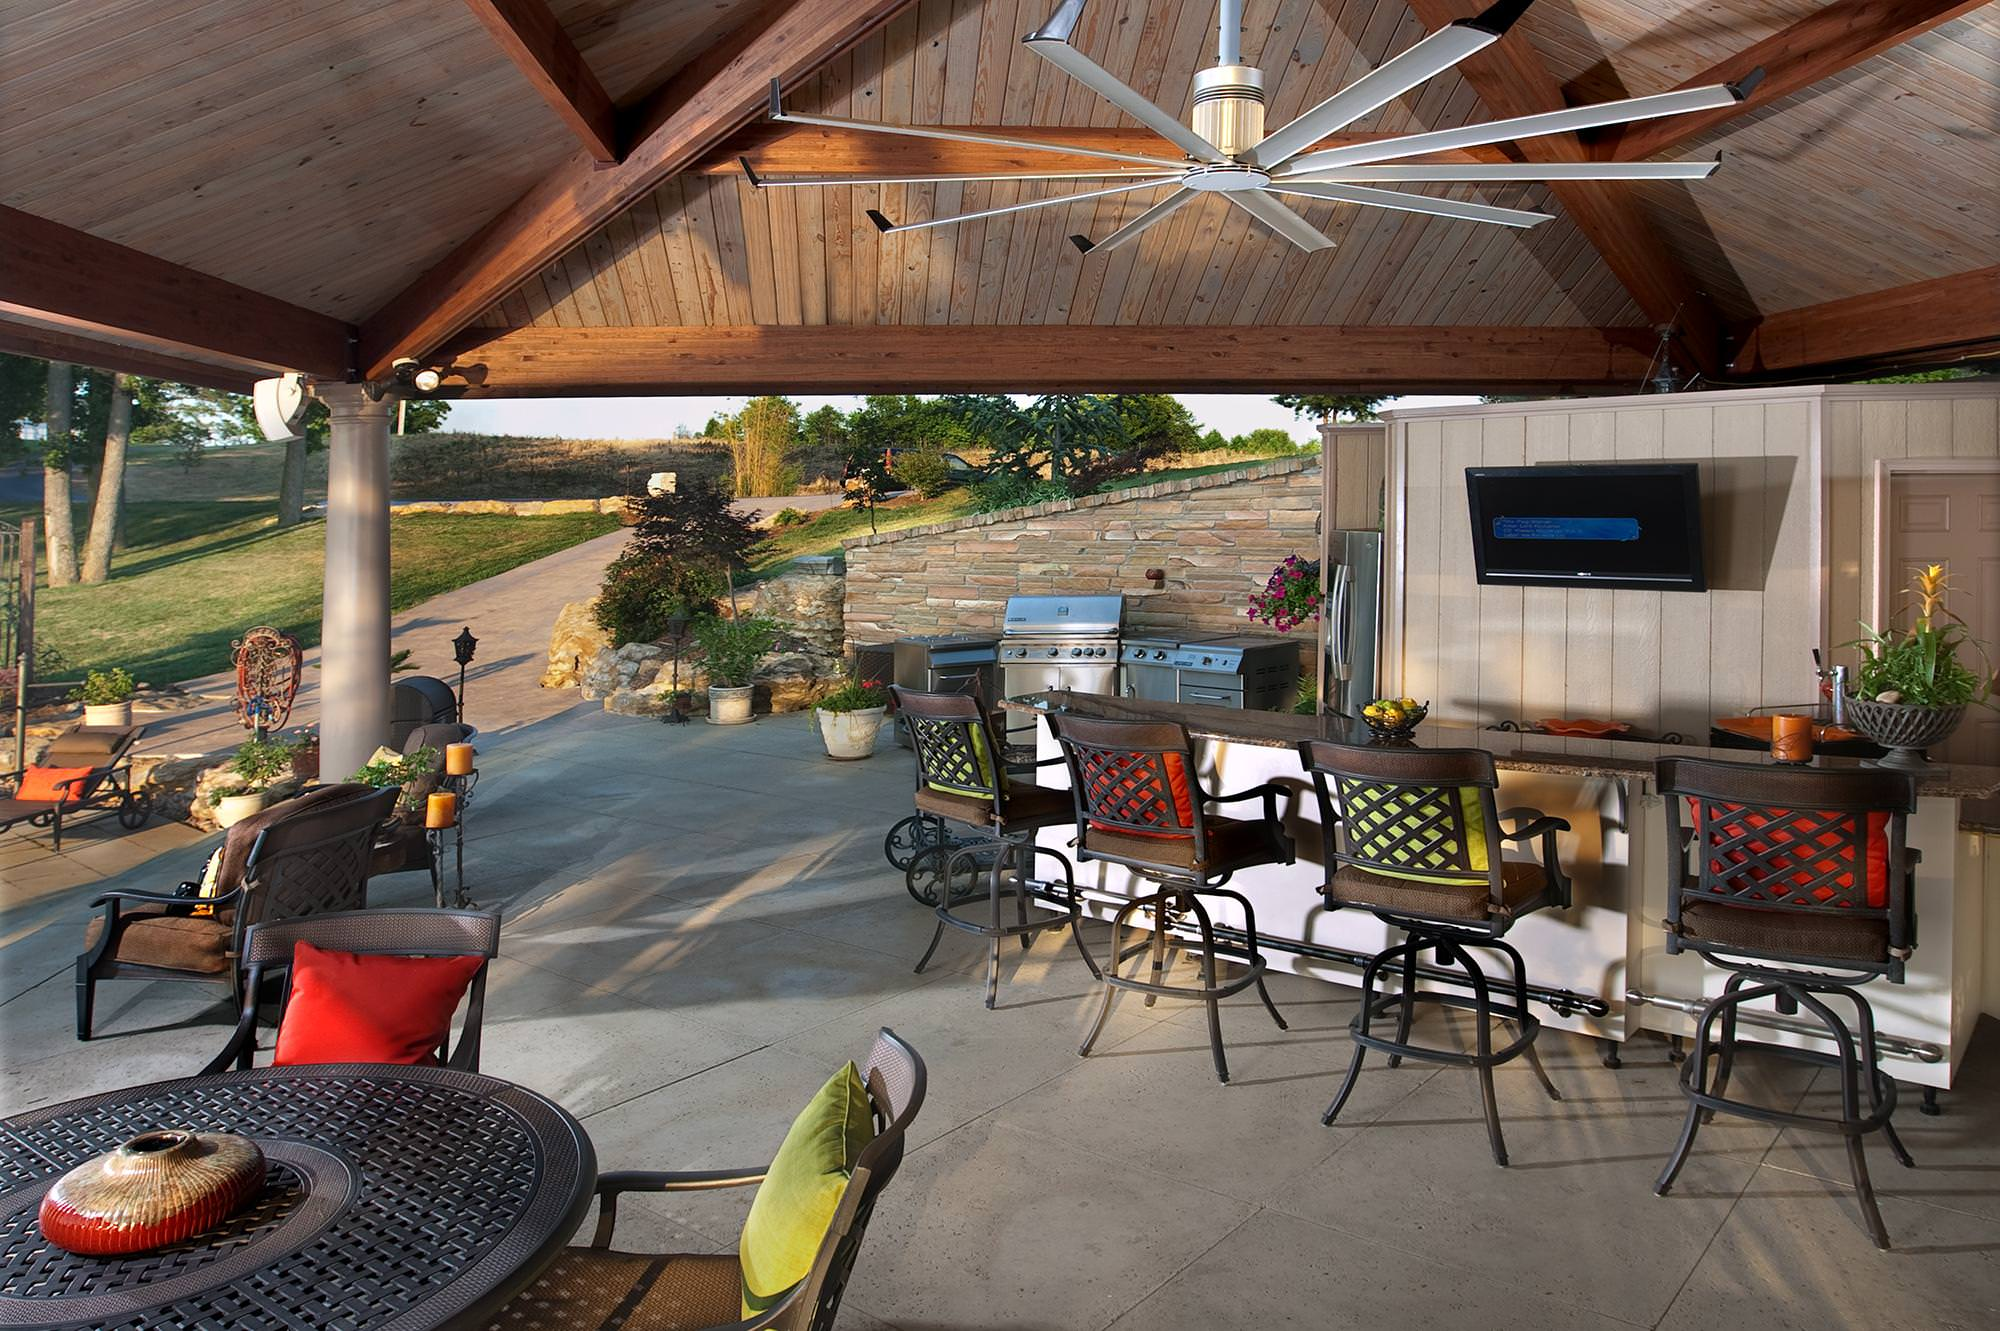 Powerful Quiet Outdoor Ceiling Fans For Open Air Venues